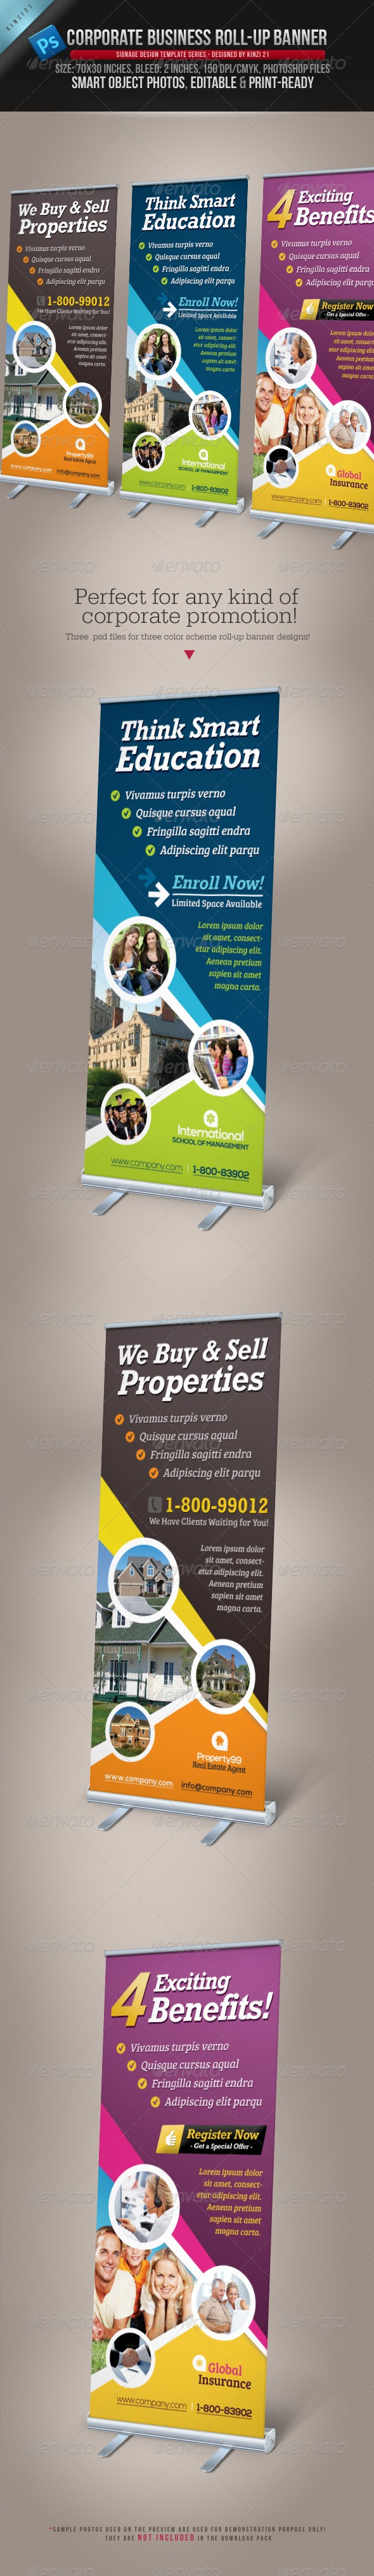 Corporate Business Roll-up Banner Template - The template files are available here: http://graphicriver.net/item/corporate-business-rollup-banner/3740415?r=kinzi21